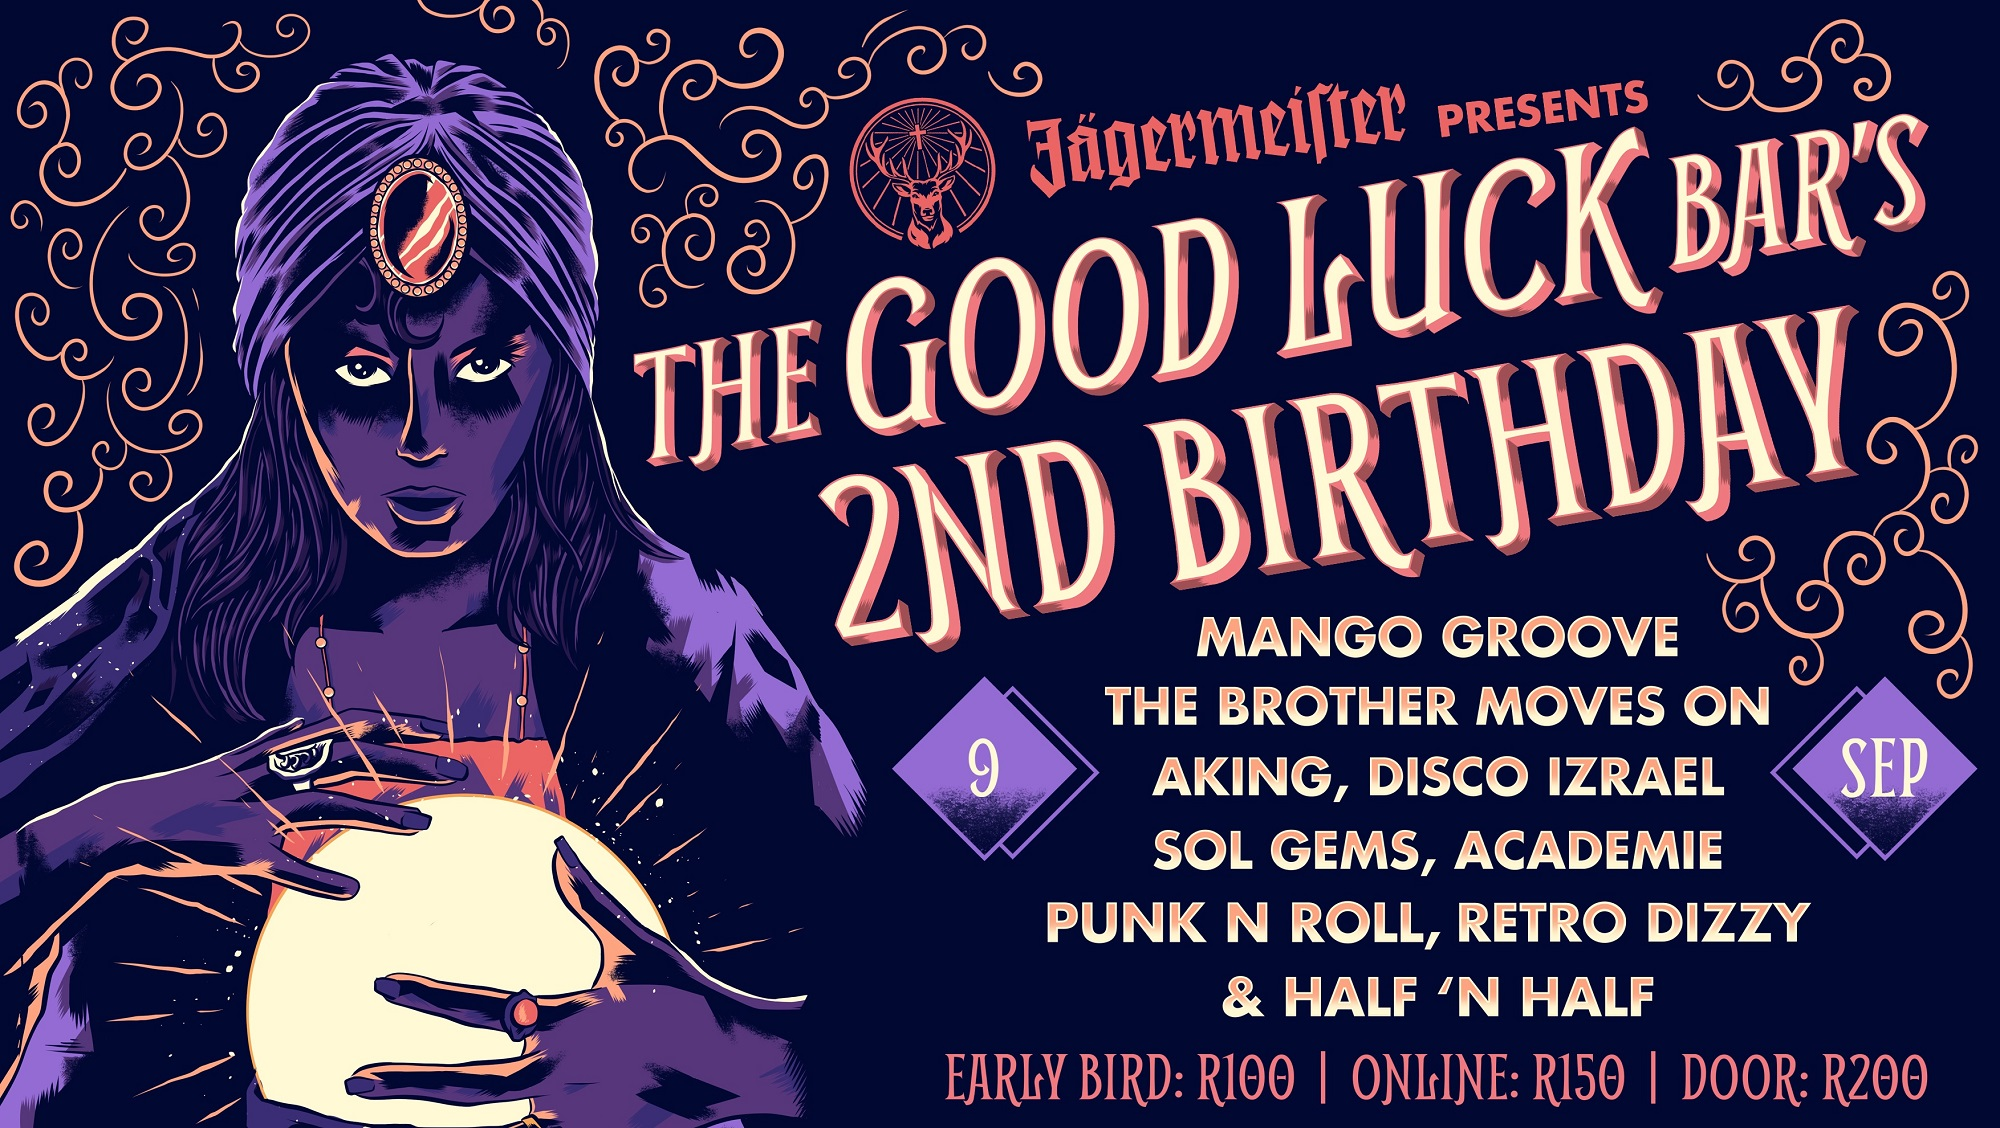 TICKET GIVEAWAY: The Good Luck Bar 2nd Birthday